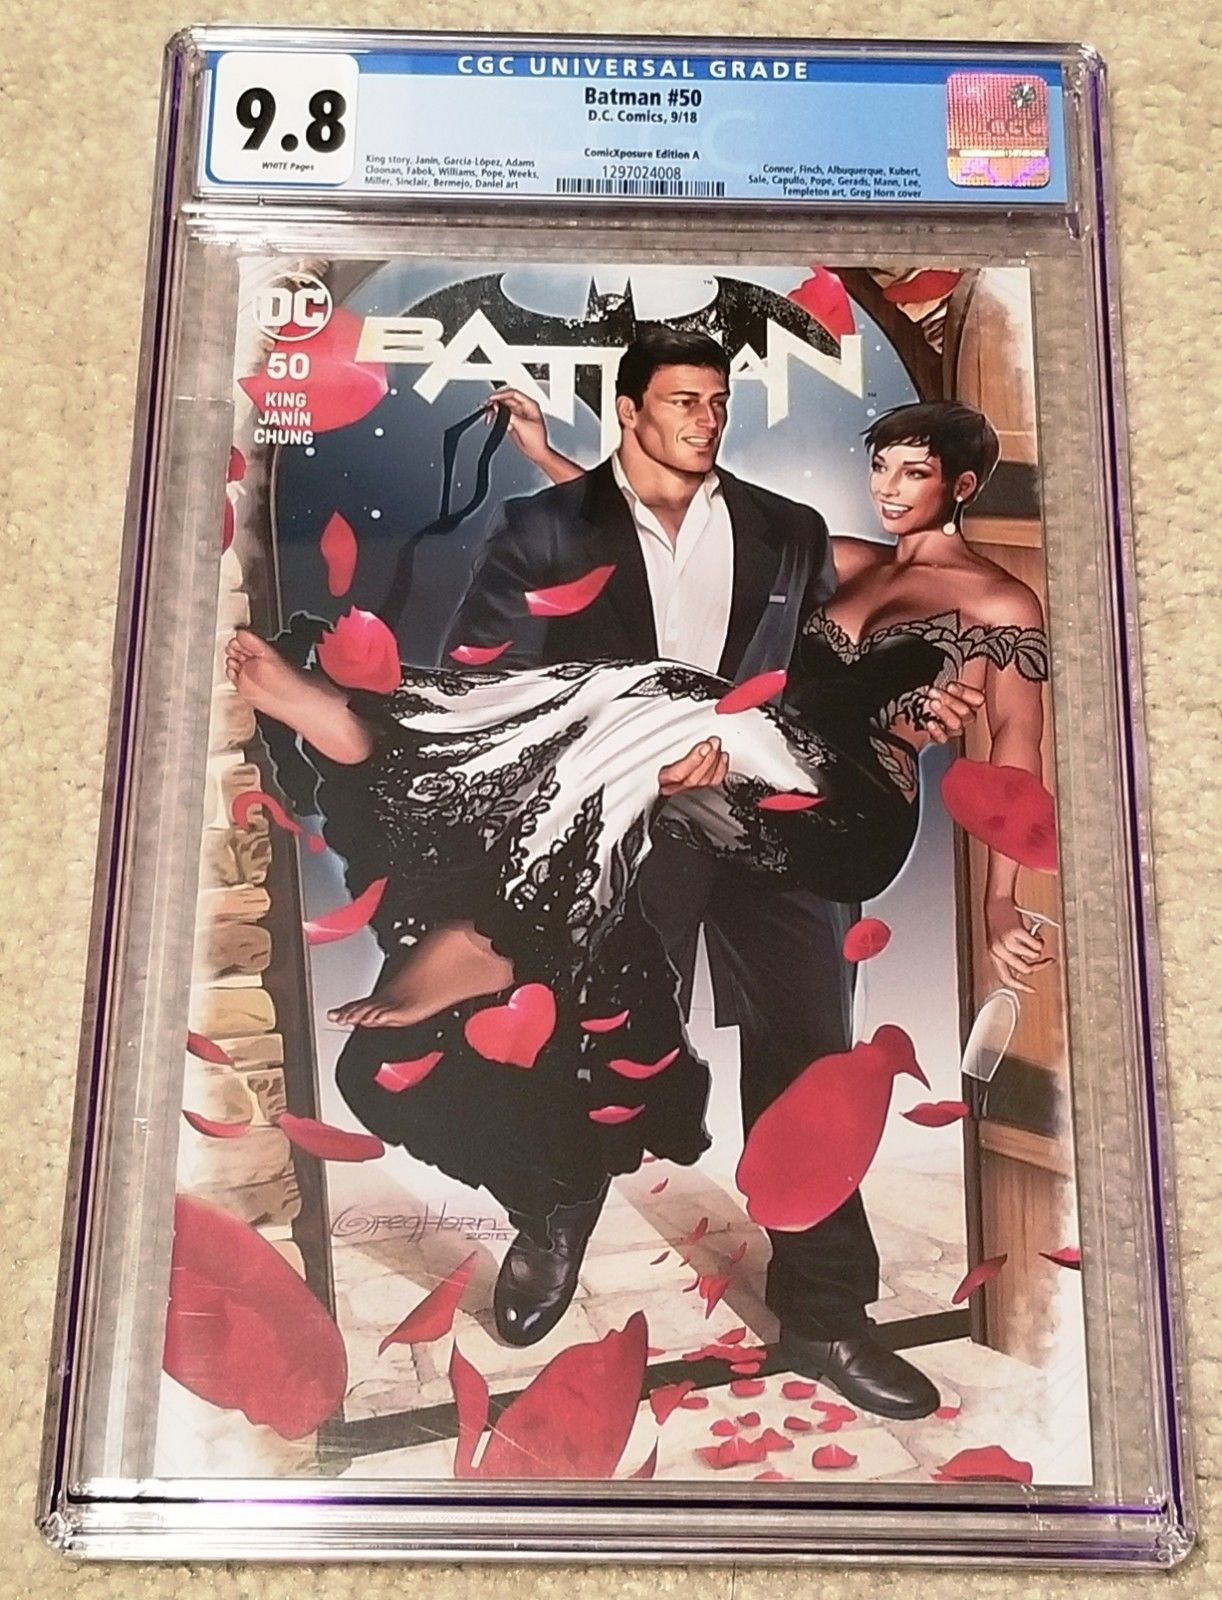 BATMAN 50 CGC 9.8 GREG HORN VARIANT-A CATWOMAN WEDDING EXCLUSIVE